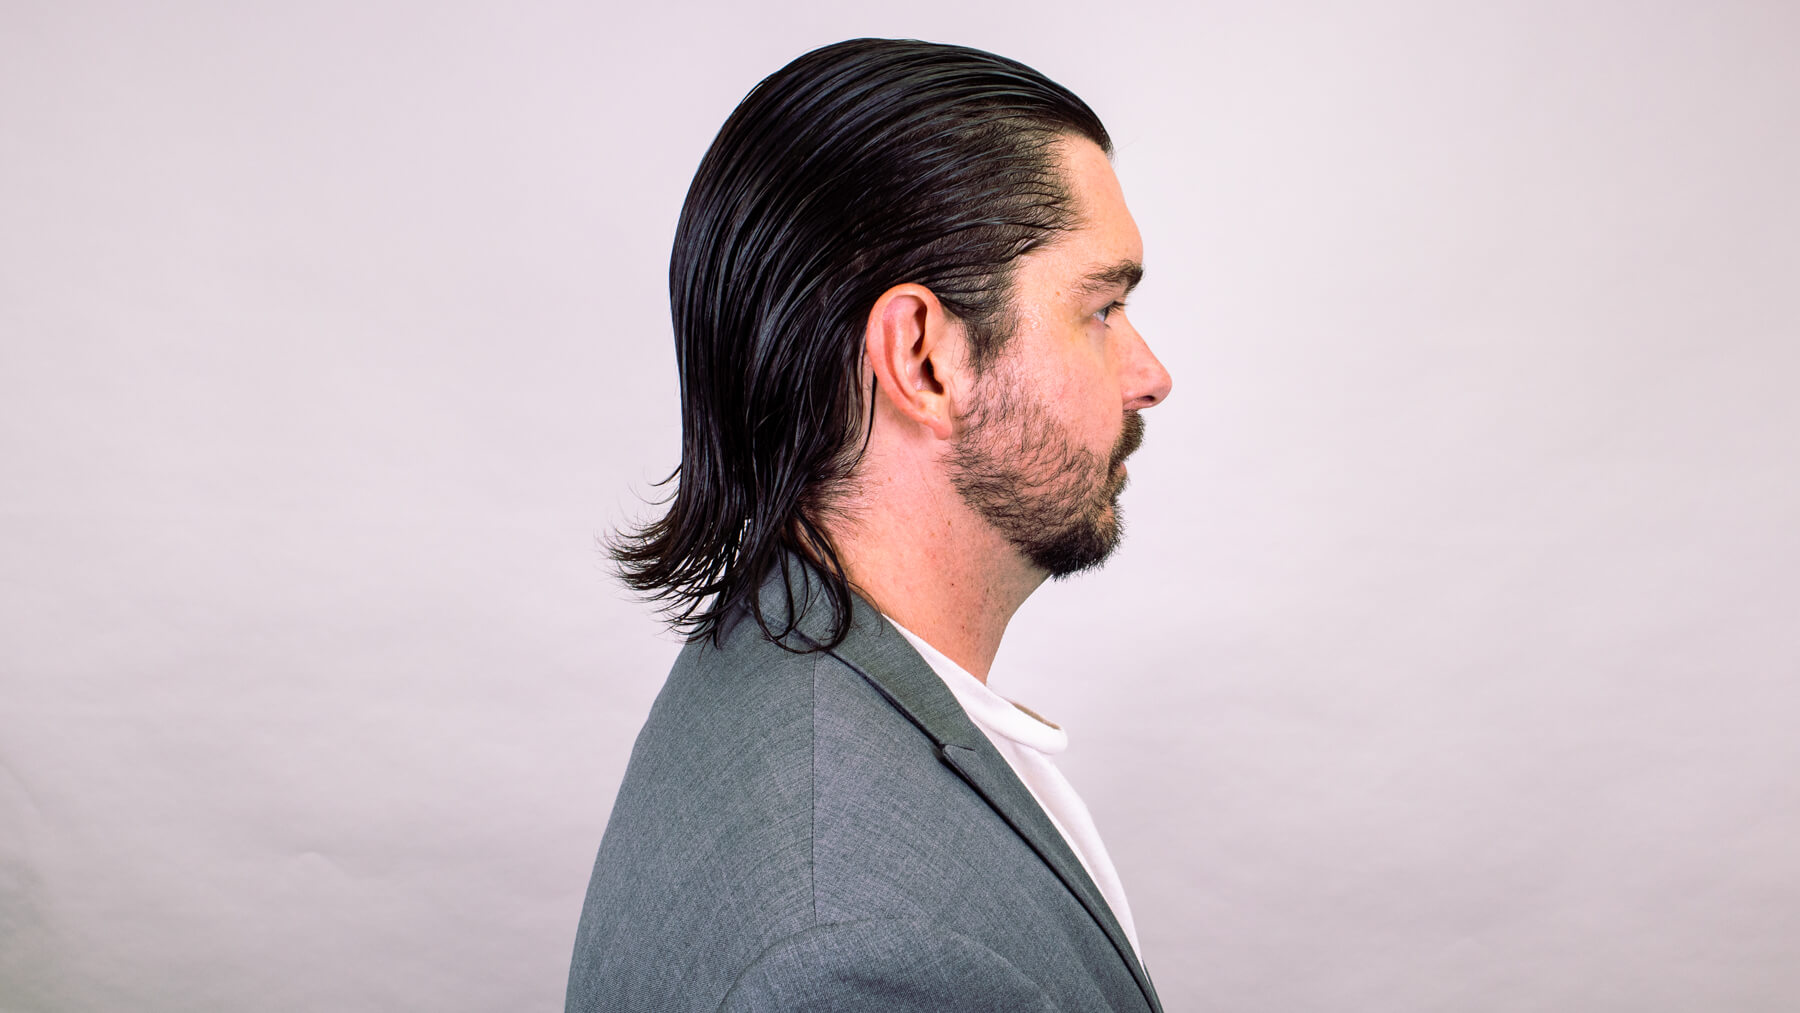 Slick back awkward stage hairstyle side profile view